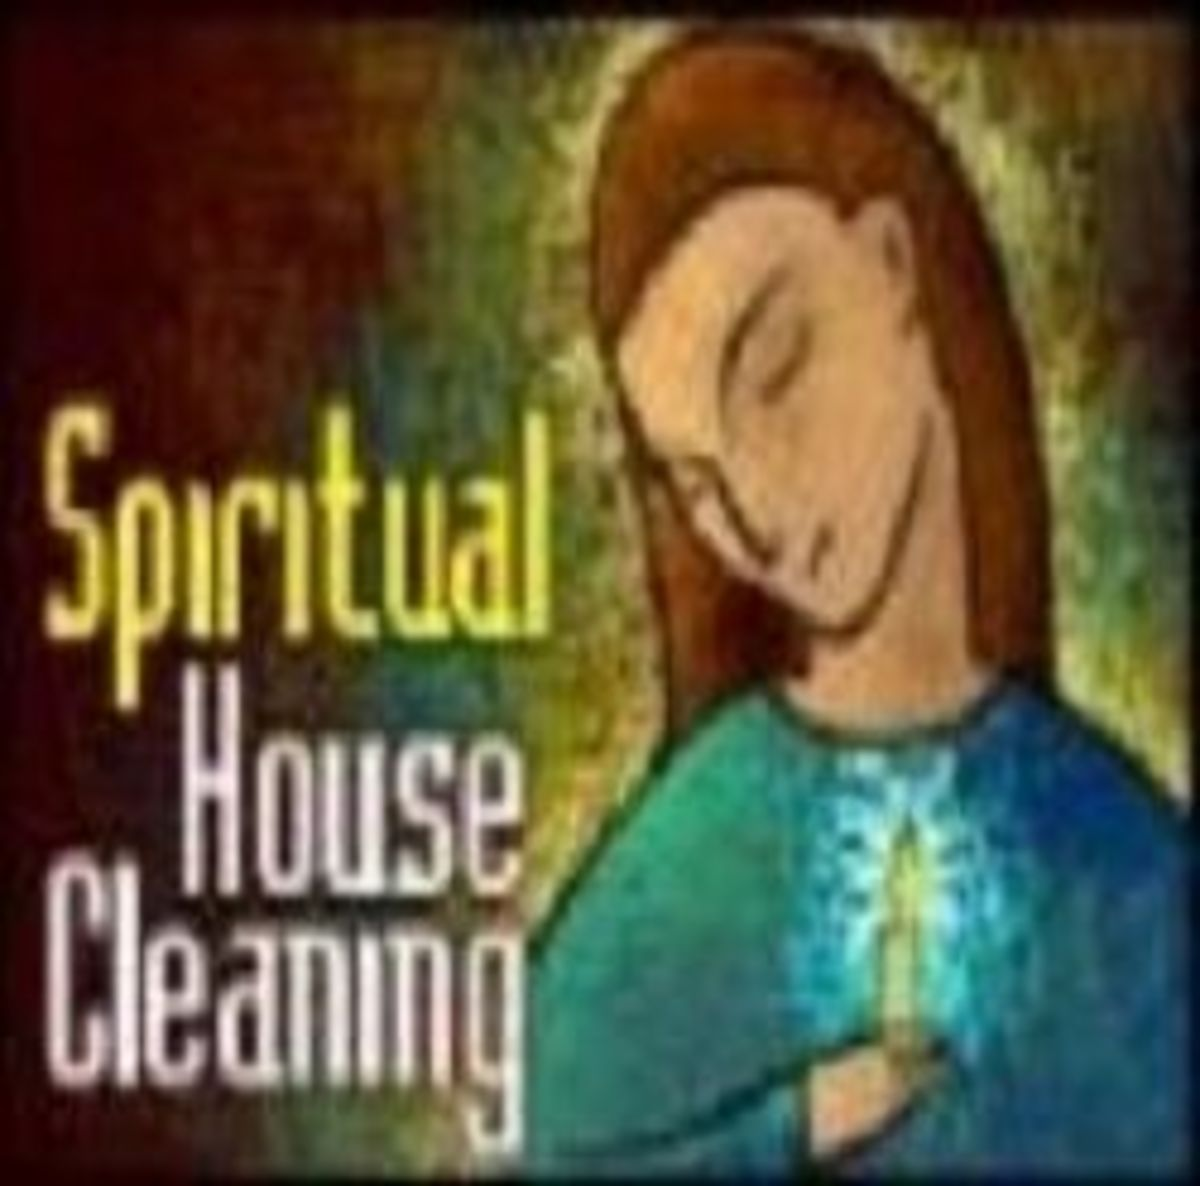 Spiritual house cleaning hubpages Cleansing bad energy from home